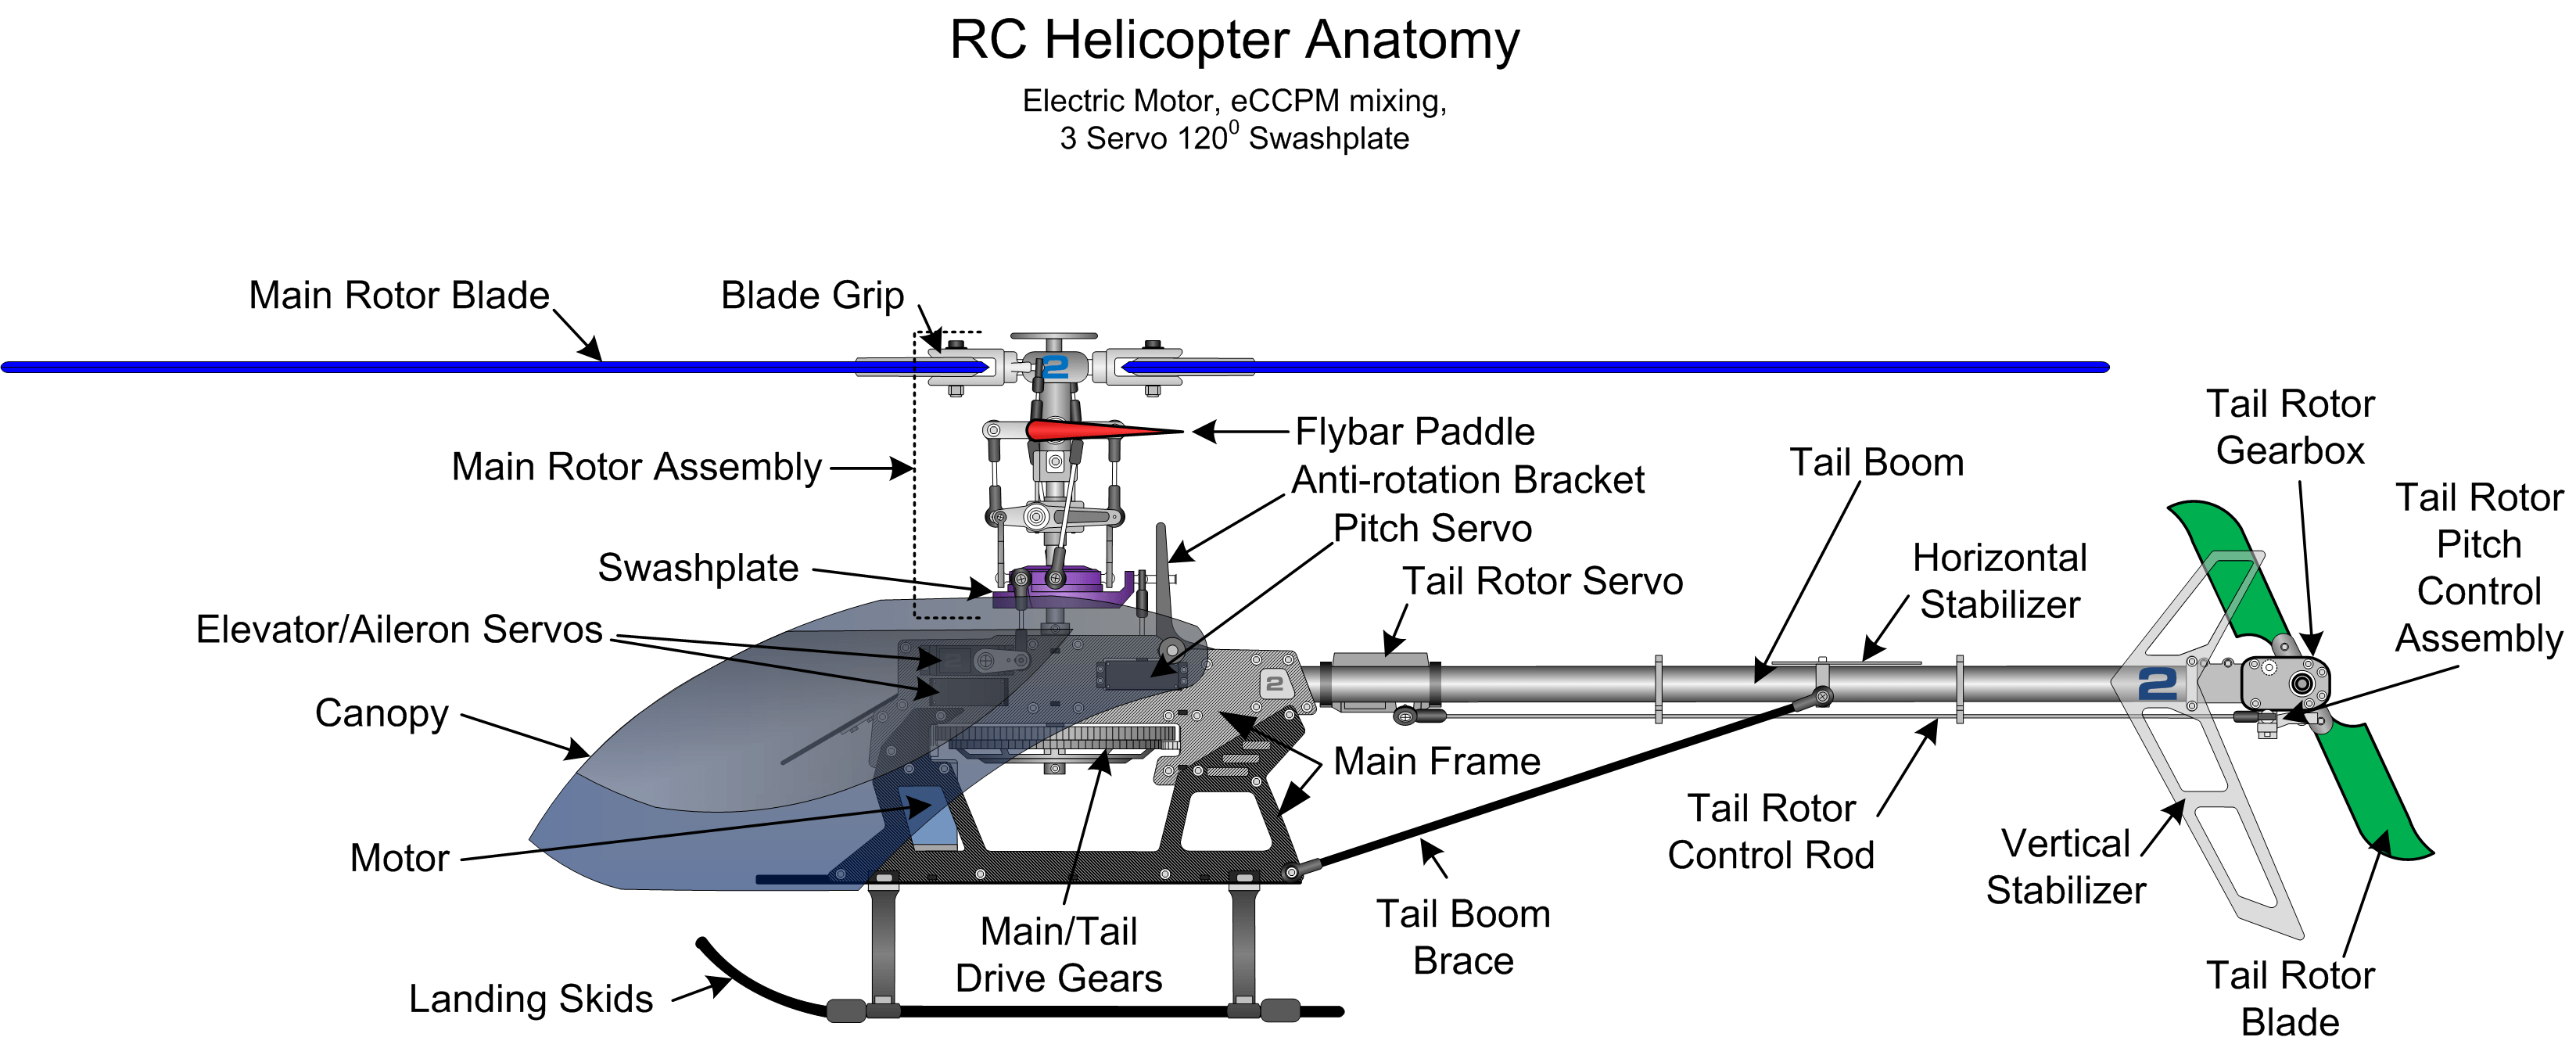 helicopter engine diagram basic electronics wiring diagram Helicopter Tail Rotor Diagram rc helicopter motor diagram wiring diagram writewhat are the name of rc helicopter parts? quora